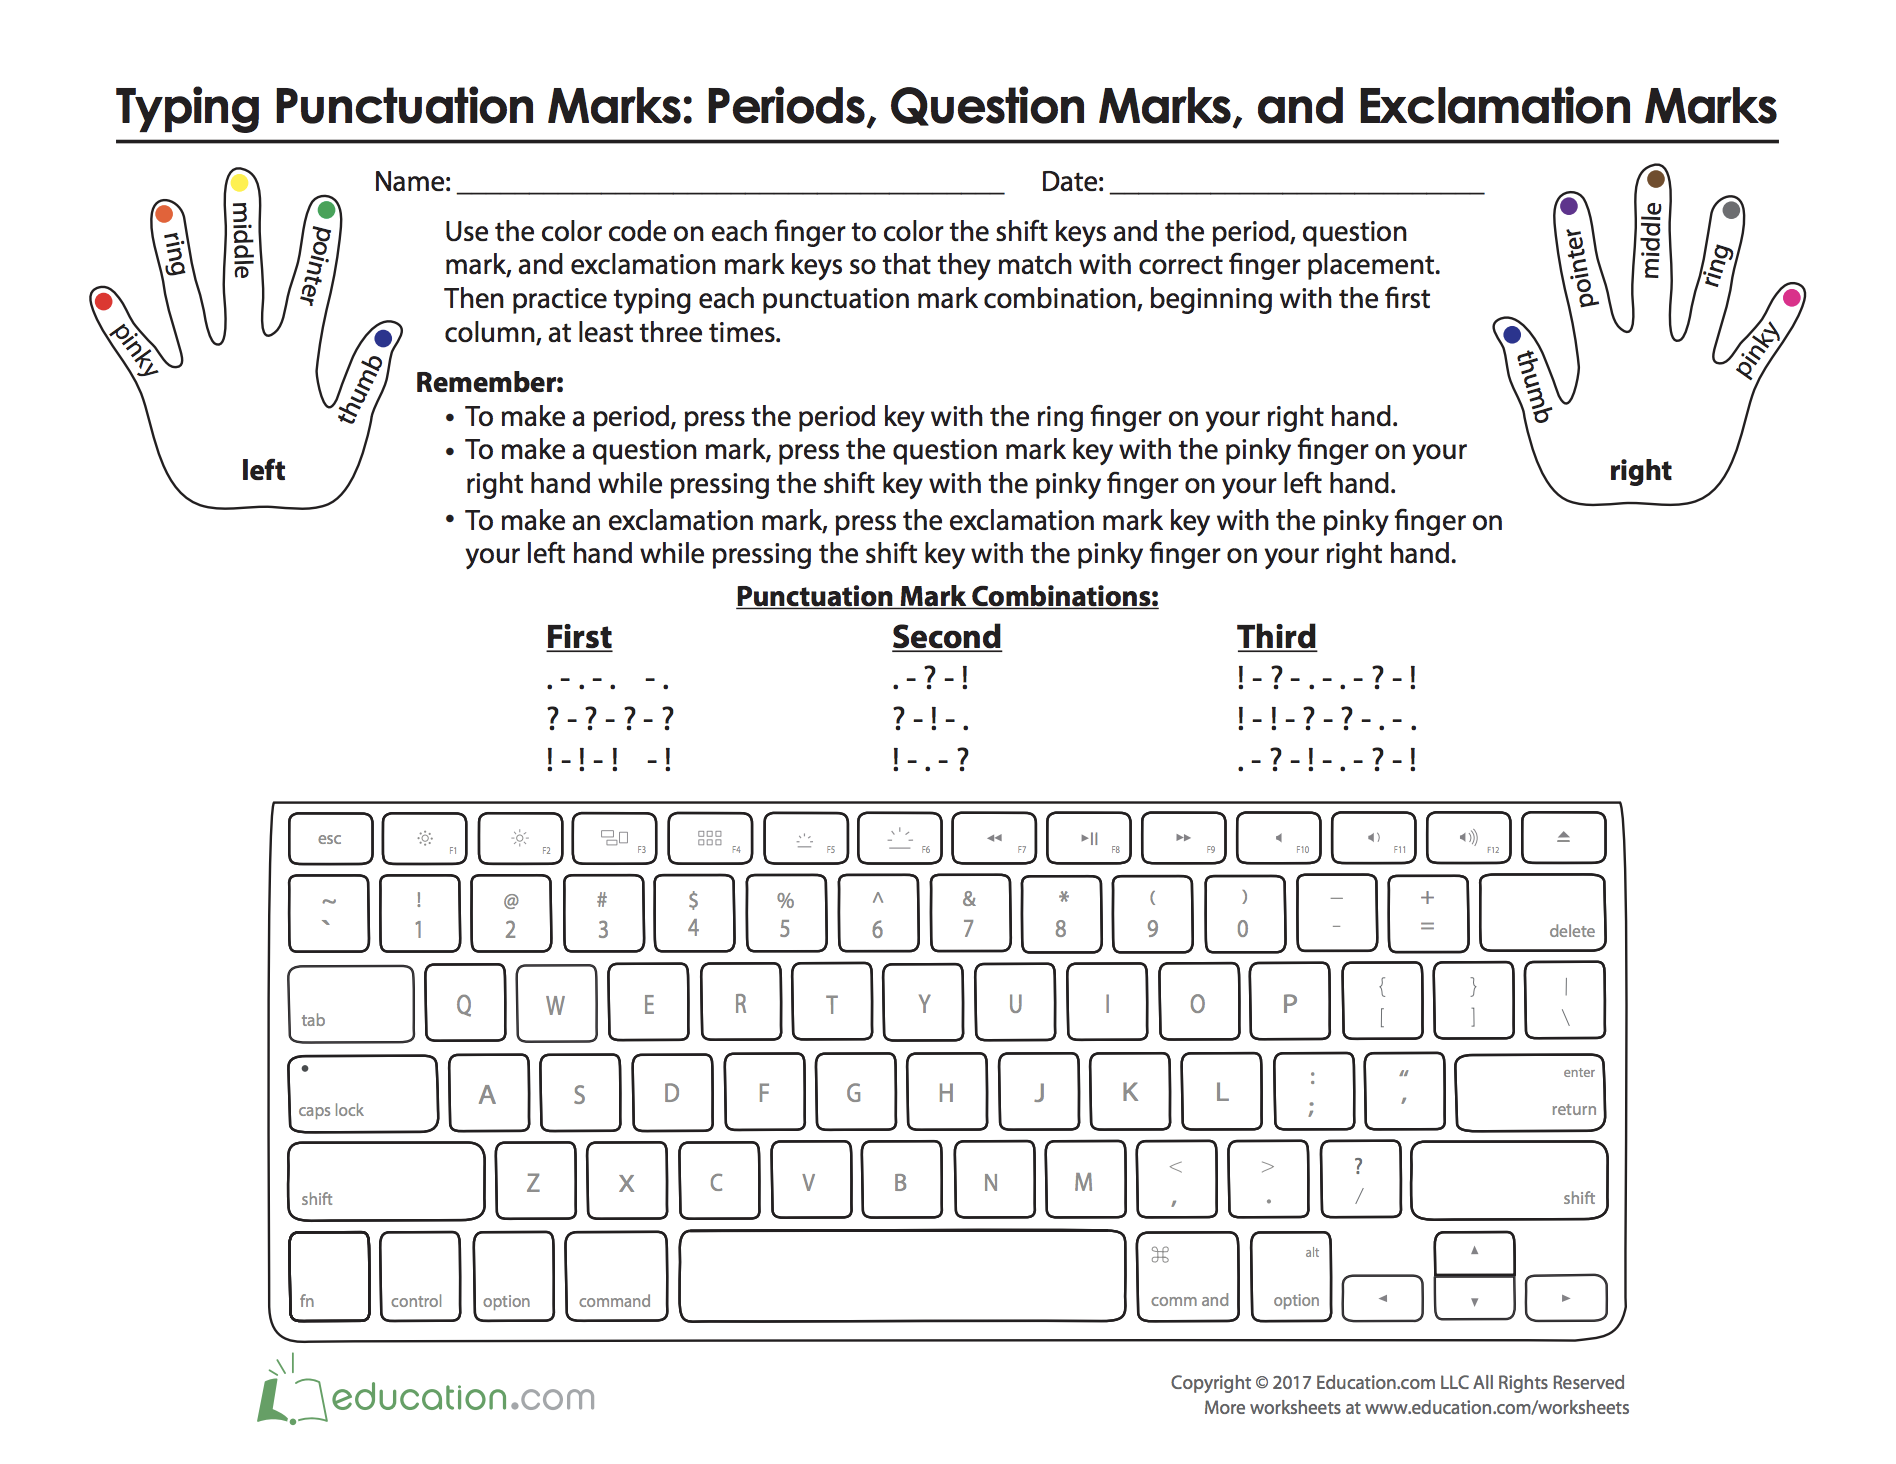 Where Do My Fingers Go Typing Punctuation Punctuation